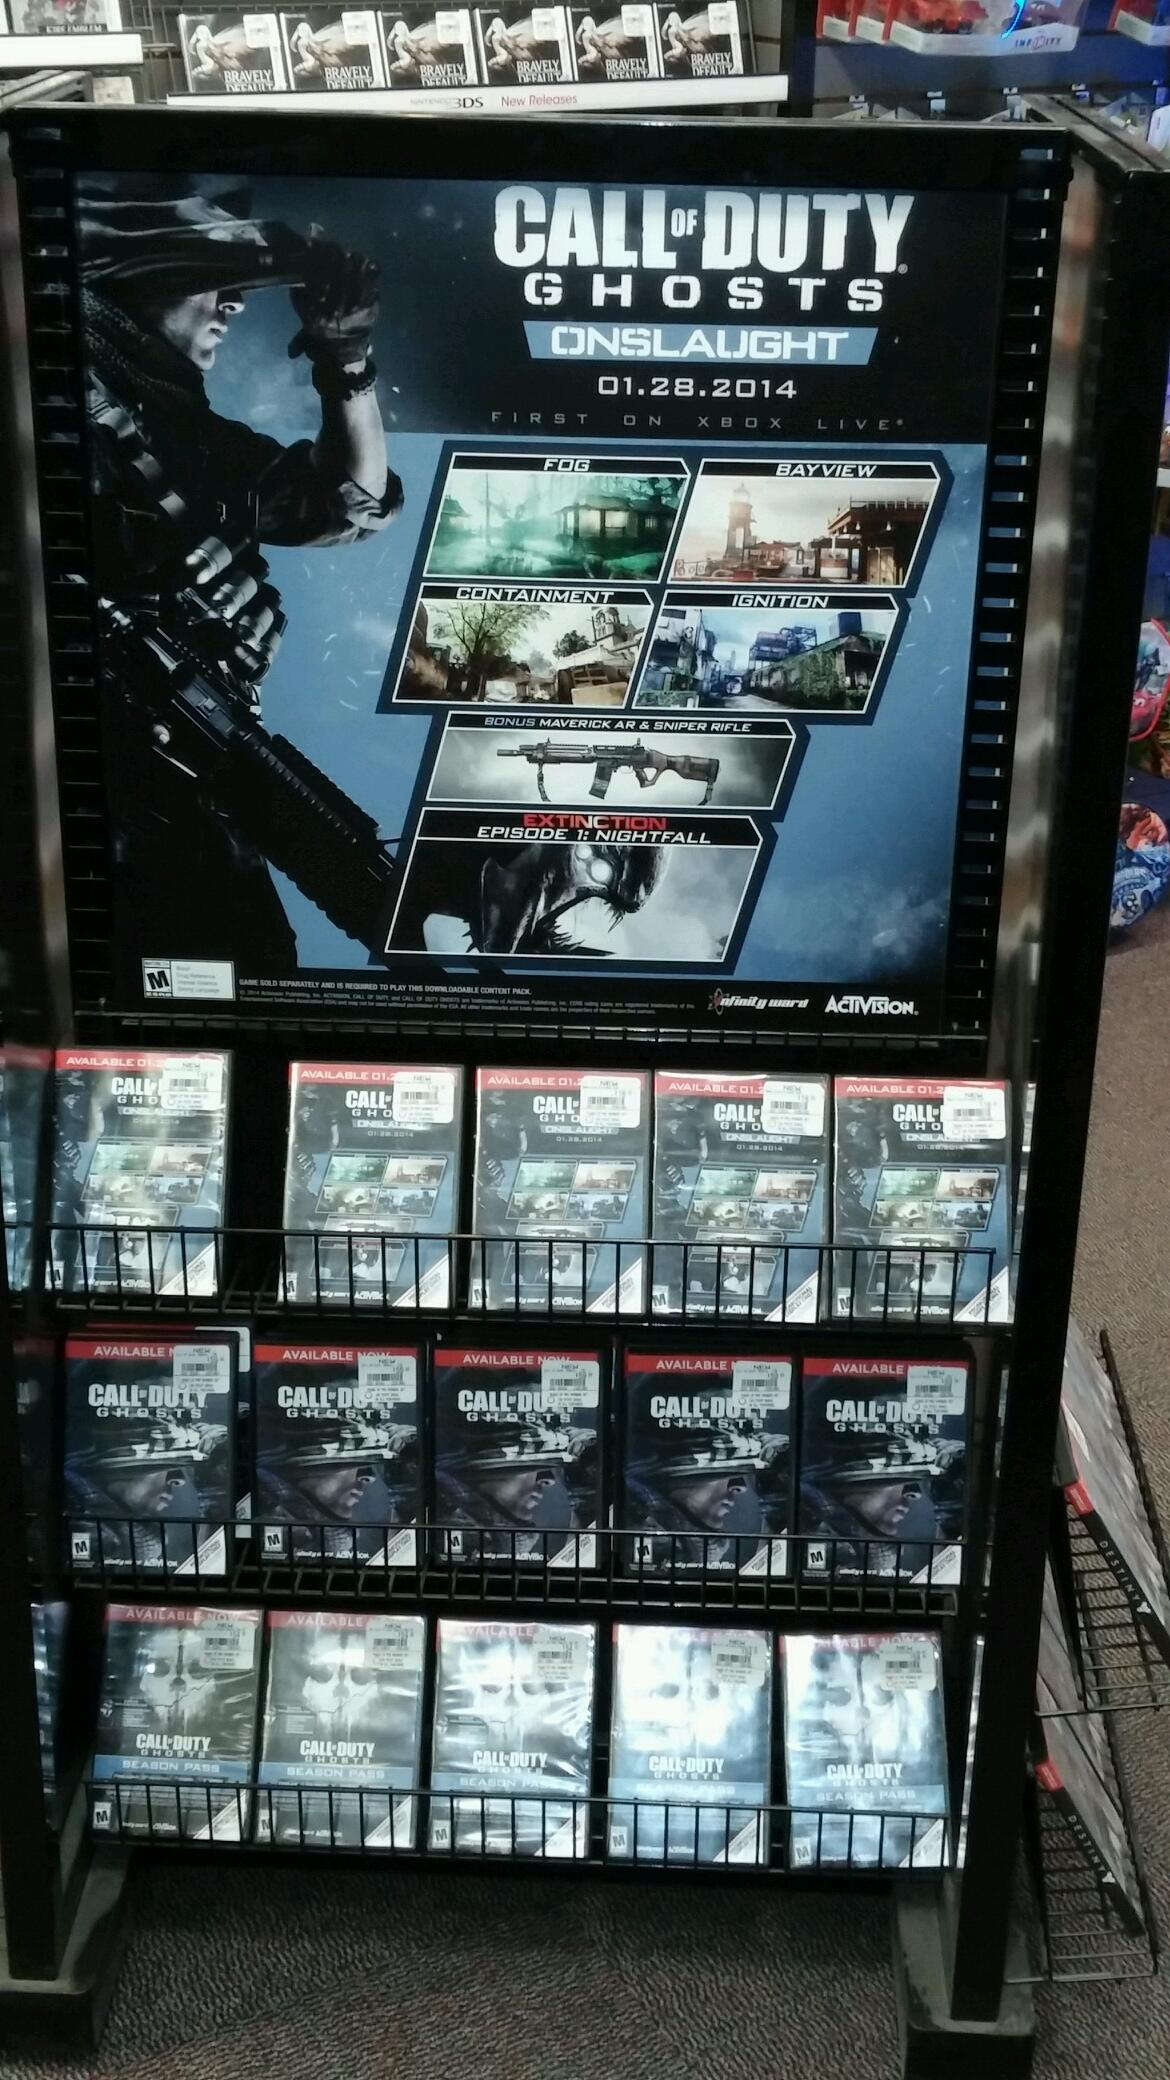 Call Of Duty Ghosts Onslaught Map Pack Contents Leaked This